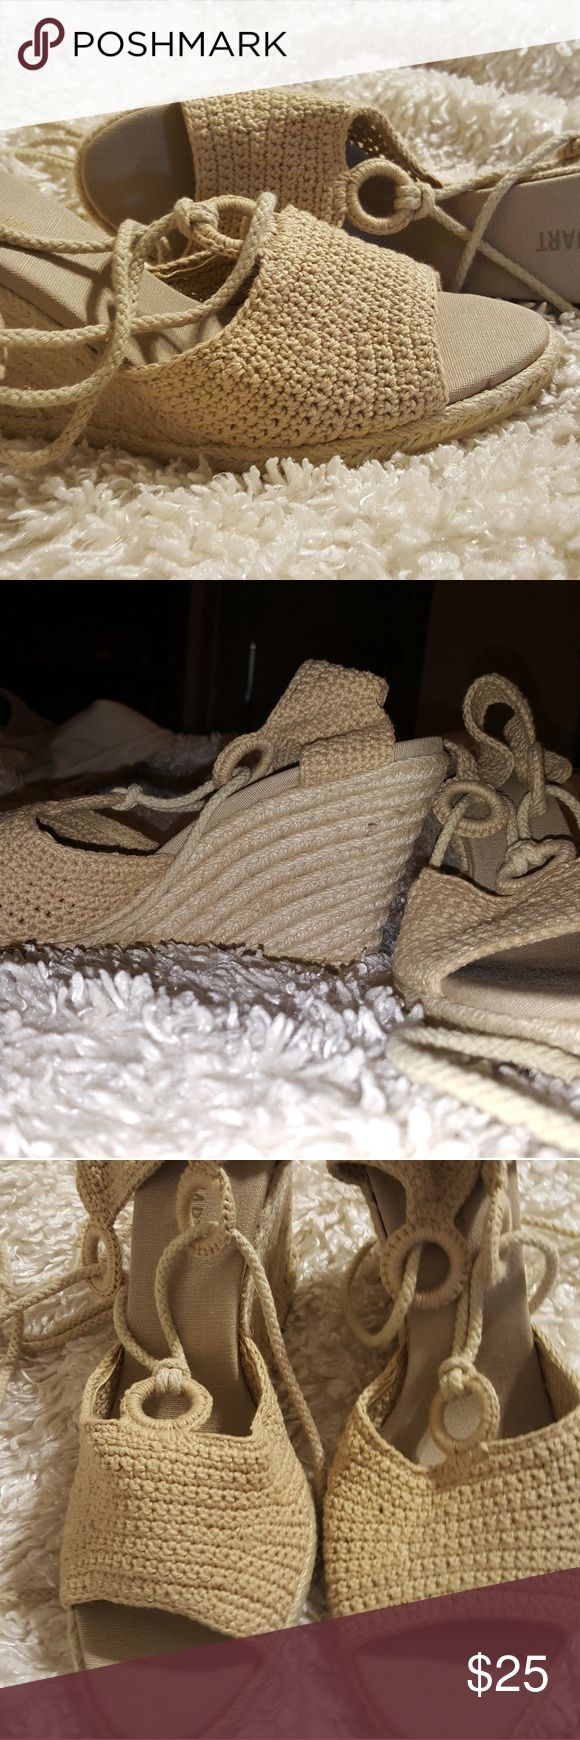 Colin Stuart (VS) Crocheted Beige Wedge Sandals 9 These gorgeous wedges are practically in pristine conditon. I'm reposhing them because they're just too high for me. The wedge is 3 inches. Colin Stuart Shoes Espadrilles